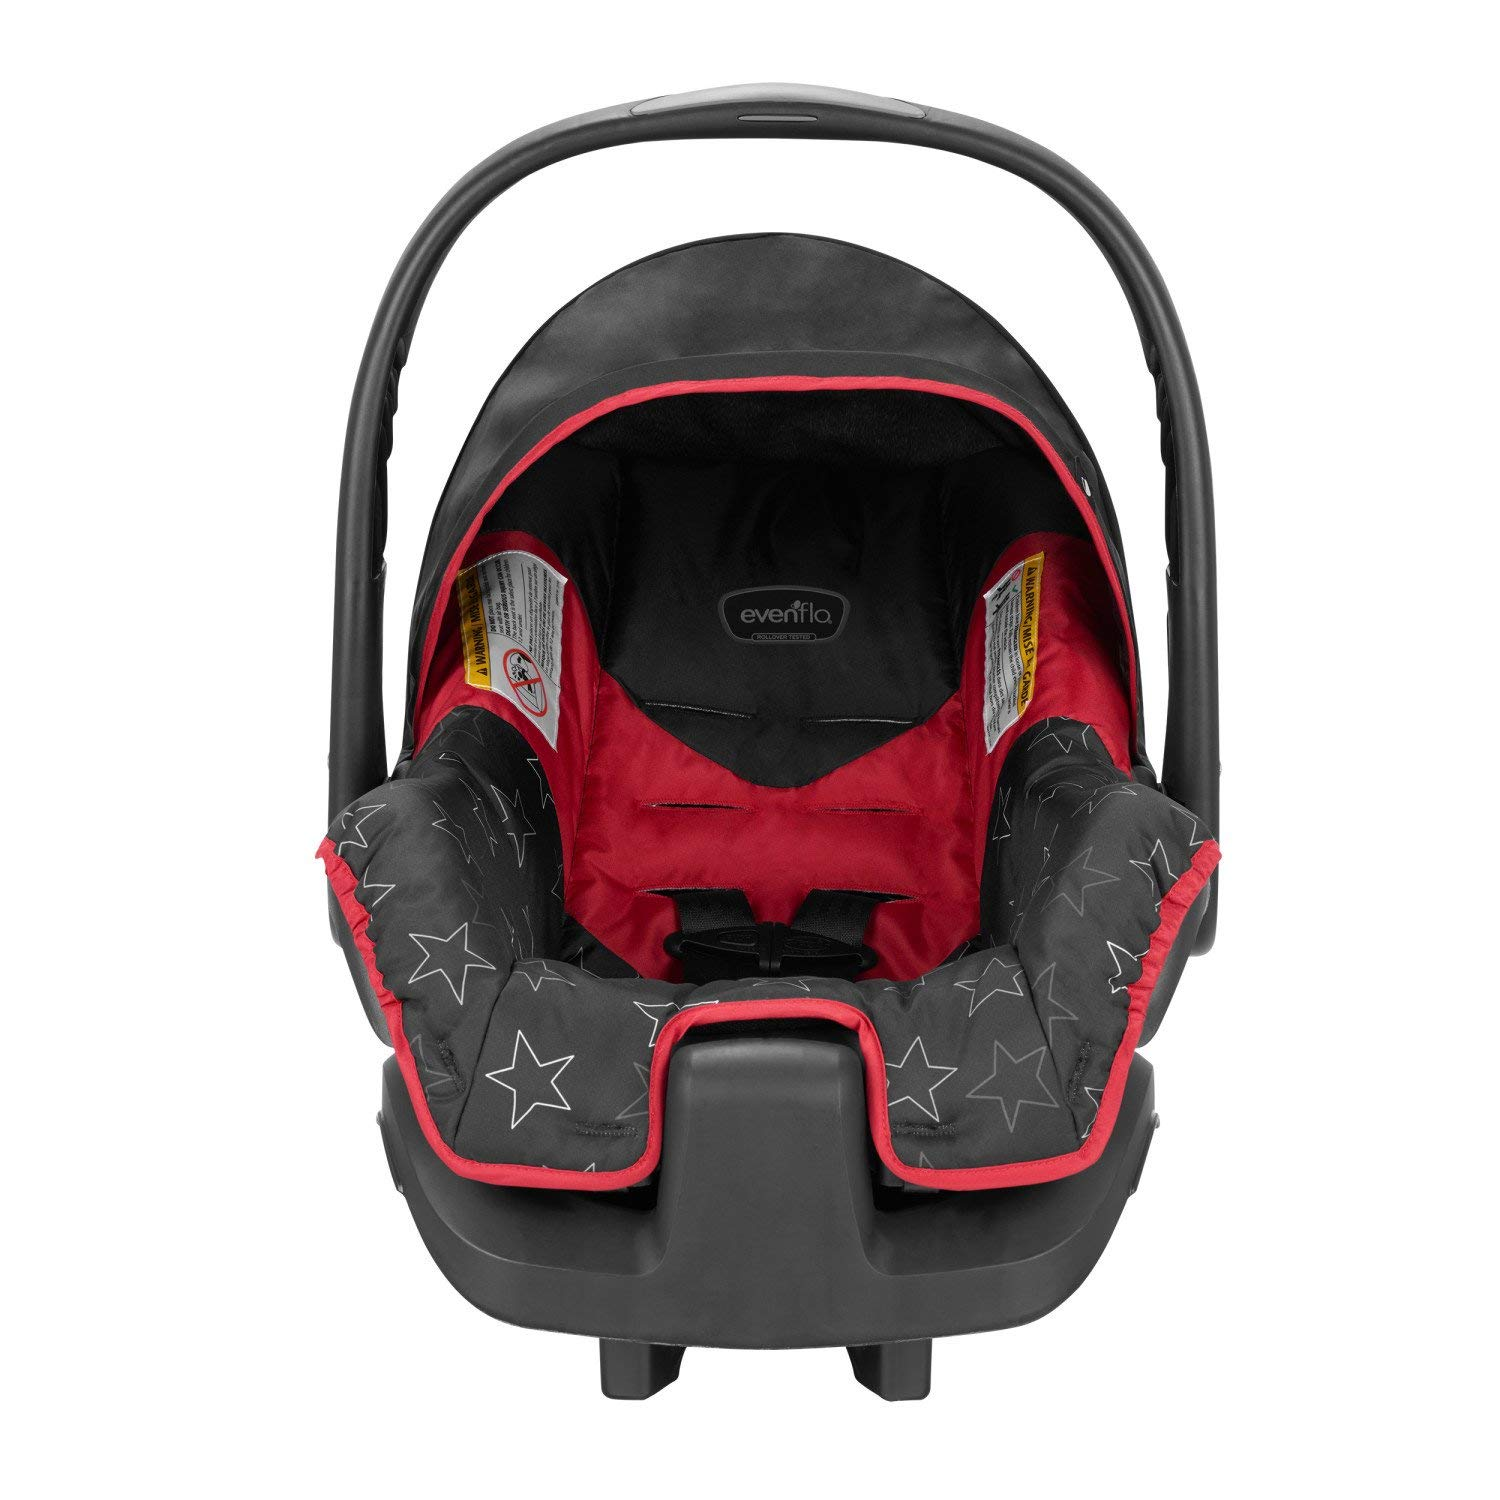 Evenflo Nurture Infant Car Seat Review